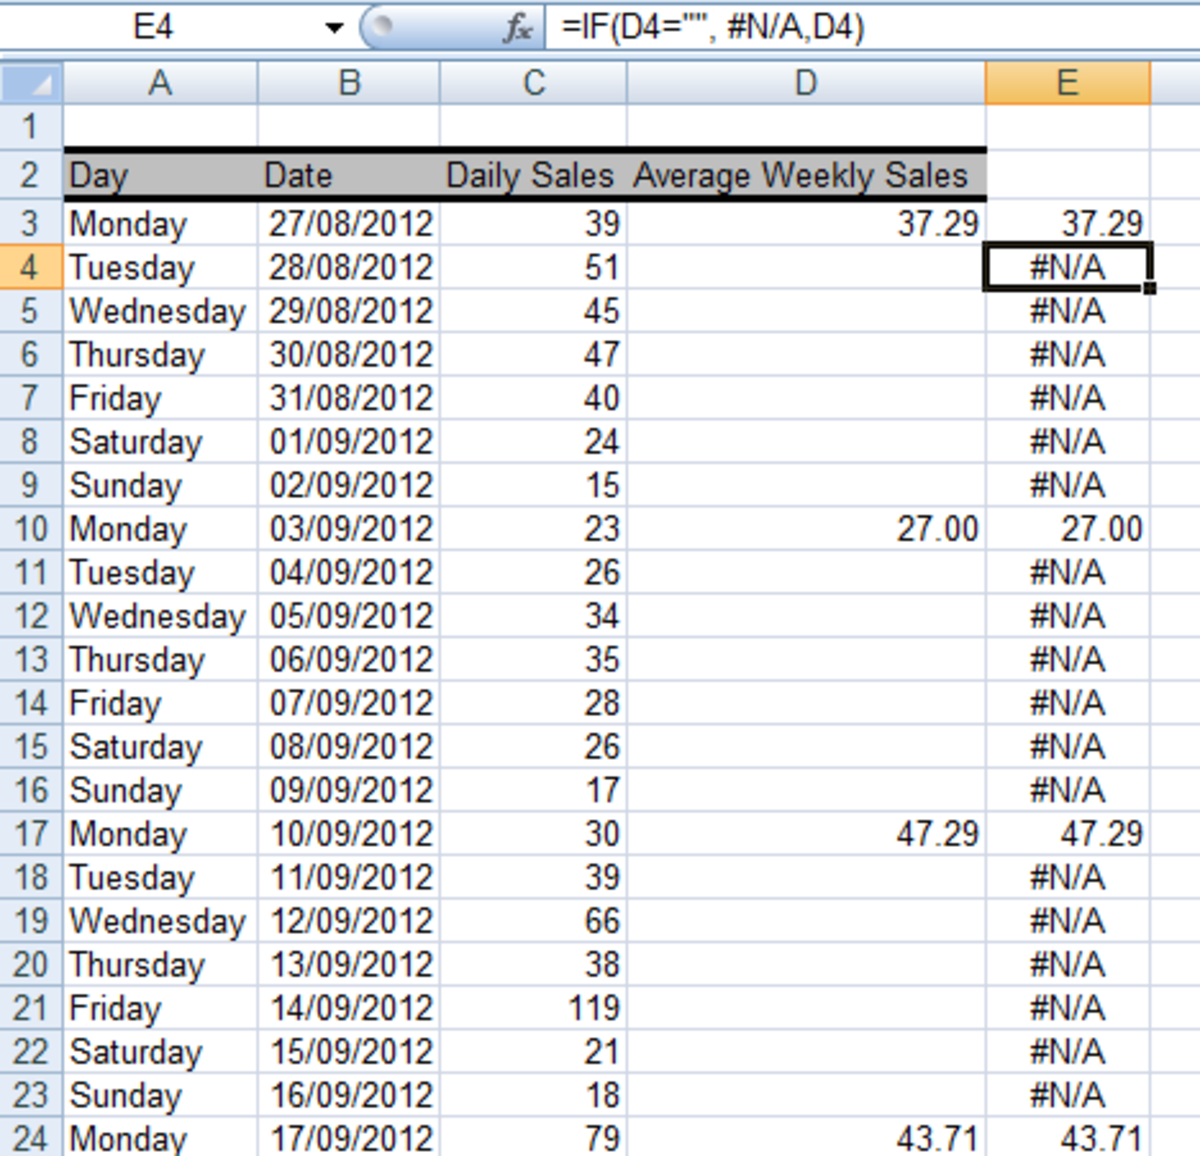 Ediblewildsus  Remarkable How To Get Excel  And  To Ignore Empty Cells In A Chart Or  With Remarkable Using The If Function In A Formula To Convert Empty Cells To Na With Charming Excel Vba Editor Also Excel Formula Substring In Addition How To Make Subscript In Excel And Excel Ppmt As Well As How Do I Convert A Pdf To Excel Additionally Help With Excel Formulas From Turbofuturecom With Ediblewildsus  Remarkable How To Get Excel  And  To Ignore Empty Cells In A Chart Or  With Charming Using The If Function In A Formula To Convert Empty Cells To Na And Remarkable Excel Vba Editor Also Excel Formula Substring In Addition How To Make Subscript In Excel From Turbofuturecom